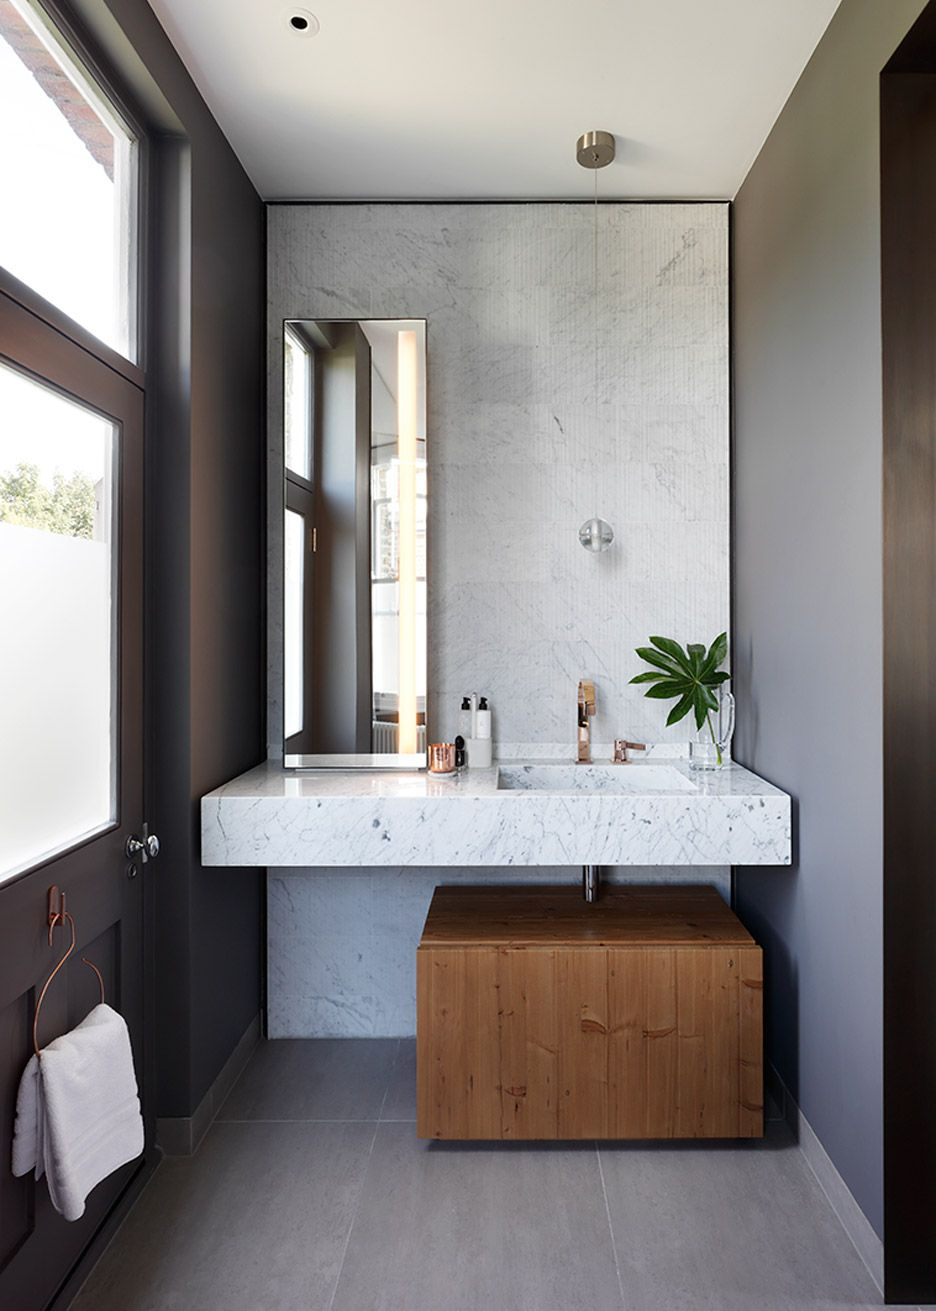 Bathroom designs Bespoke joinery and minimal materials